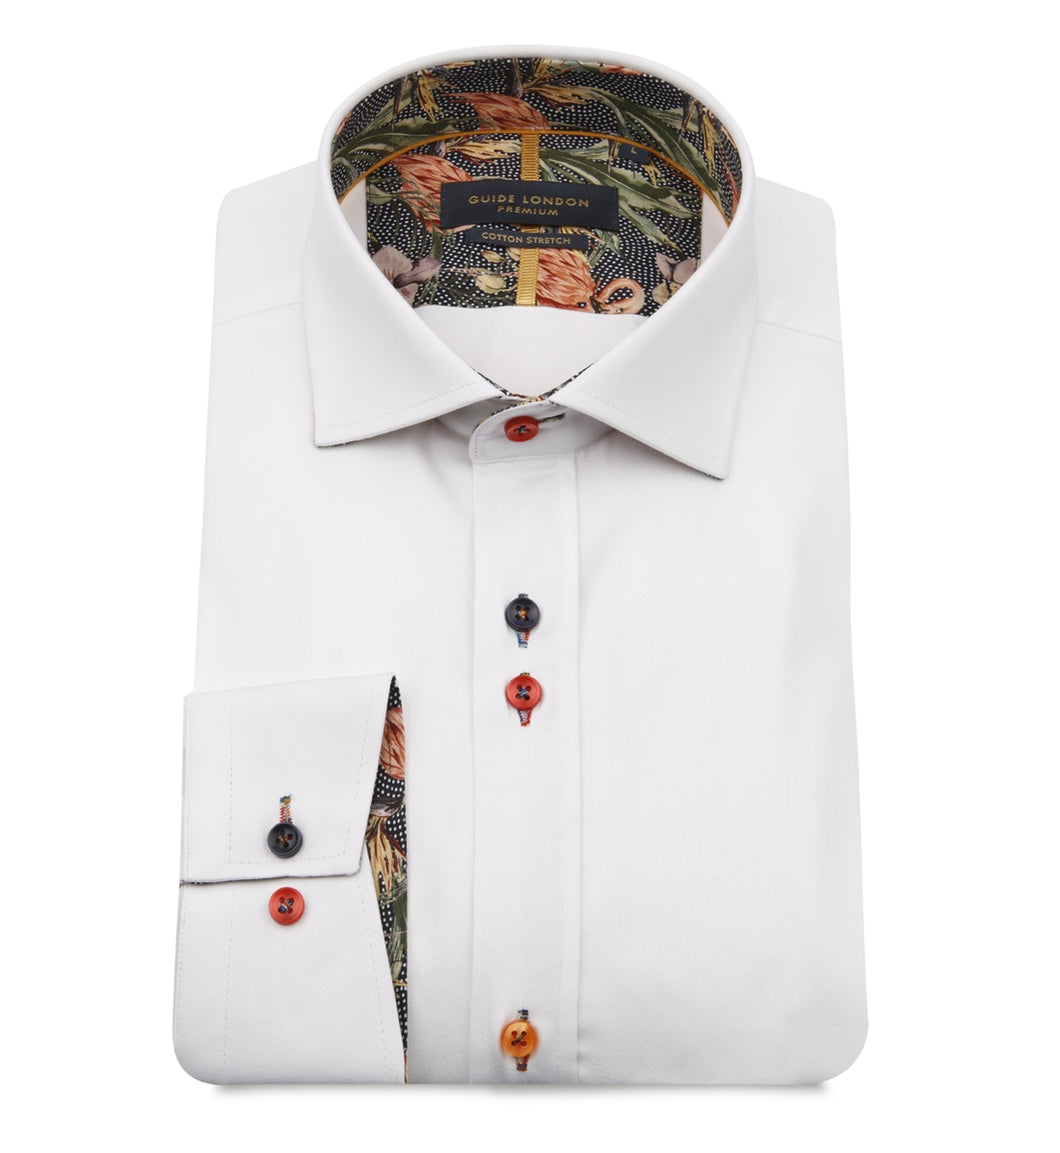 Guide London Multicolour Button Shirt White